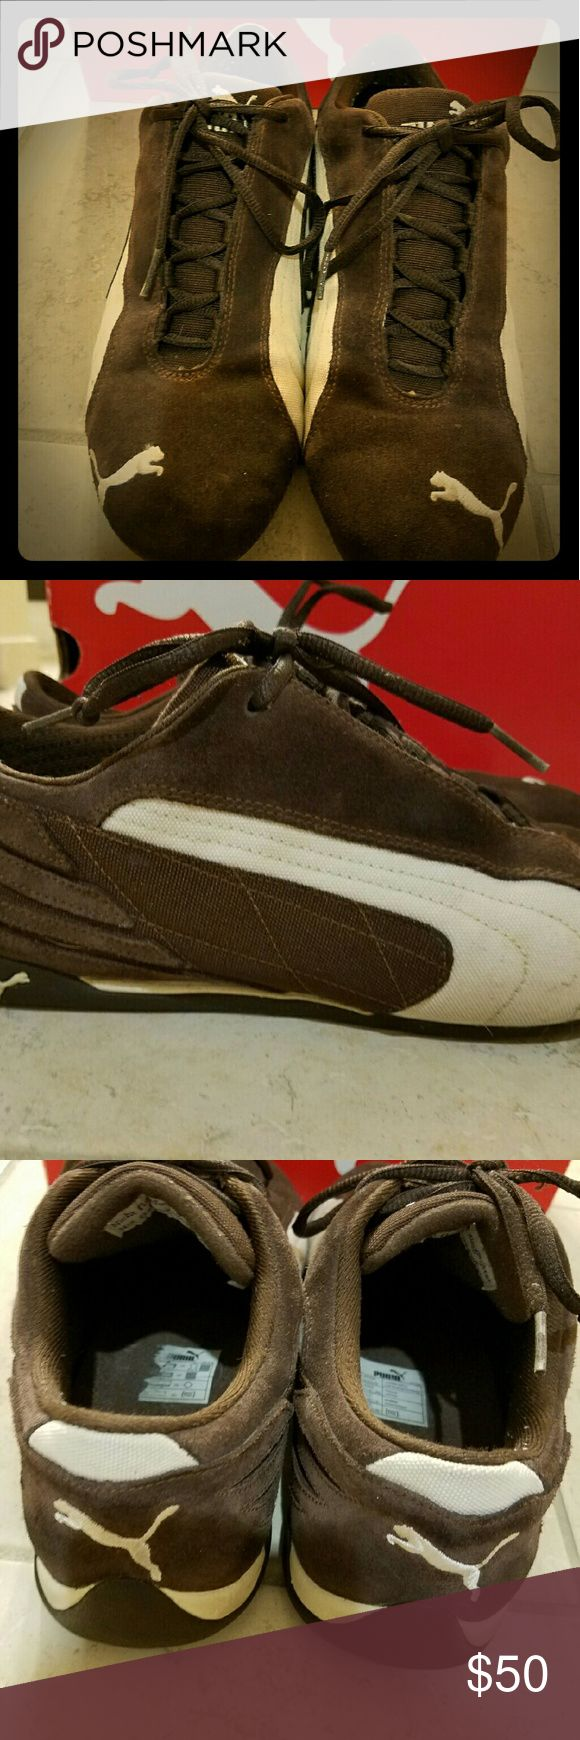 Ripli cat low Pumas Original speed cat low Pumas. extremely comfortable high quality suede. Previously slightly worn. Puma Shoes Sneakers